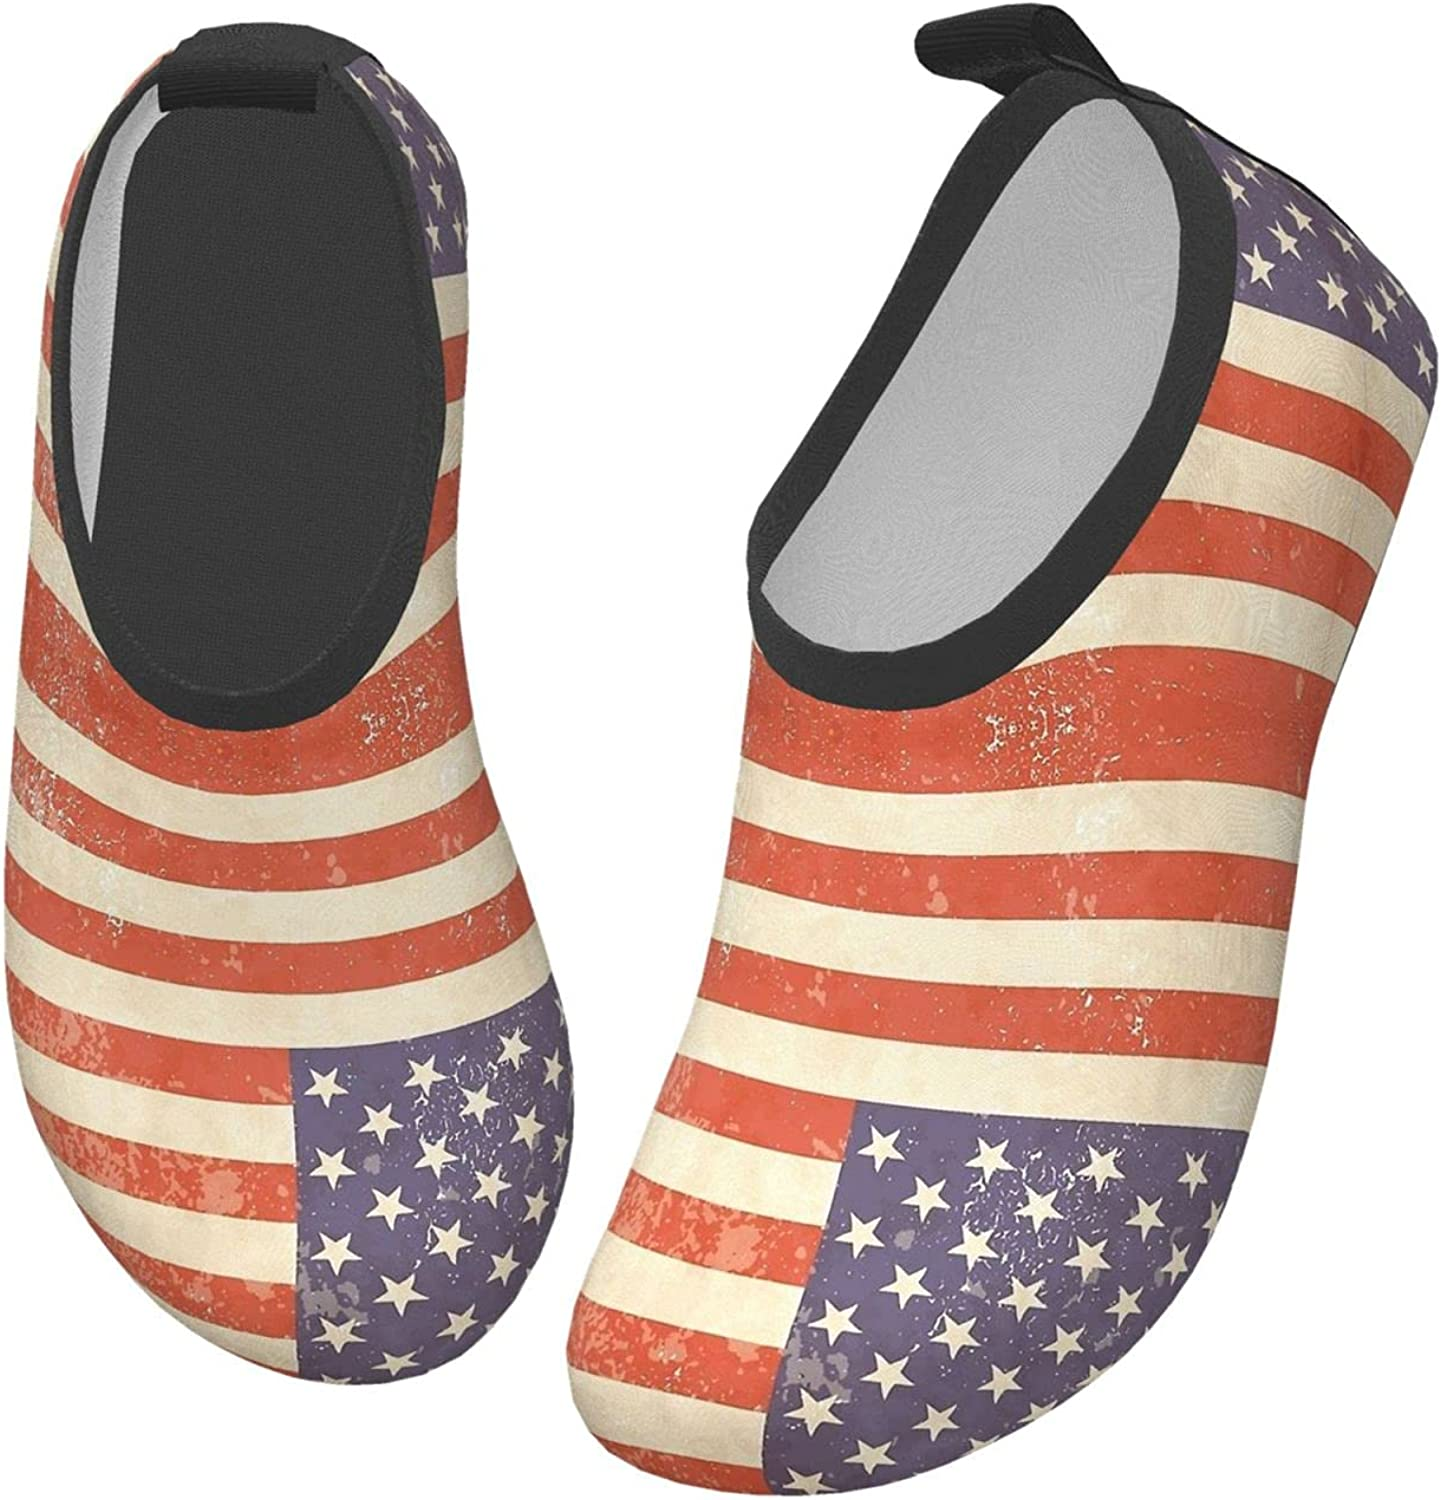 Vintage Retro American America US Flag Water Shoes for Kids Beach Sports Aqua Socks Swim Shoes for Boys Quick-Dry Barefoot Yoga Surfing with Drainage